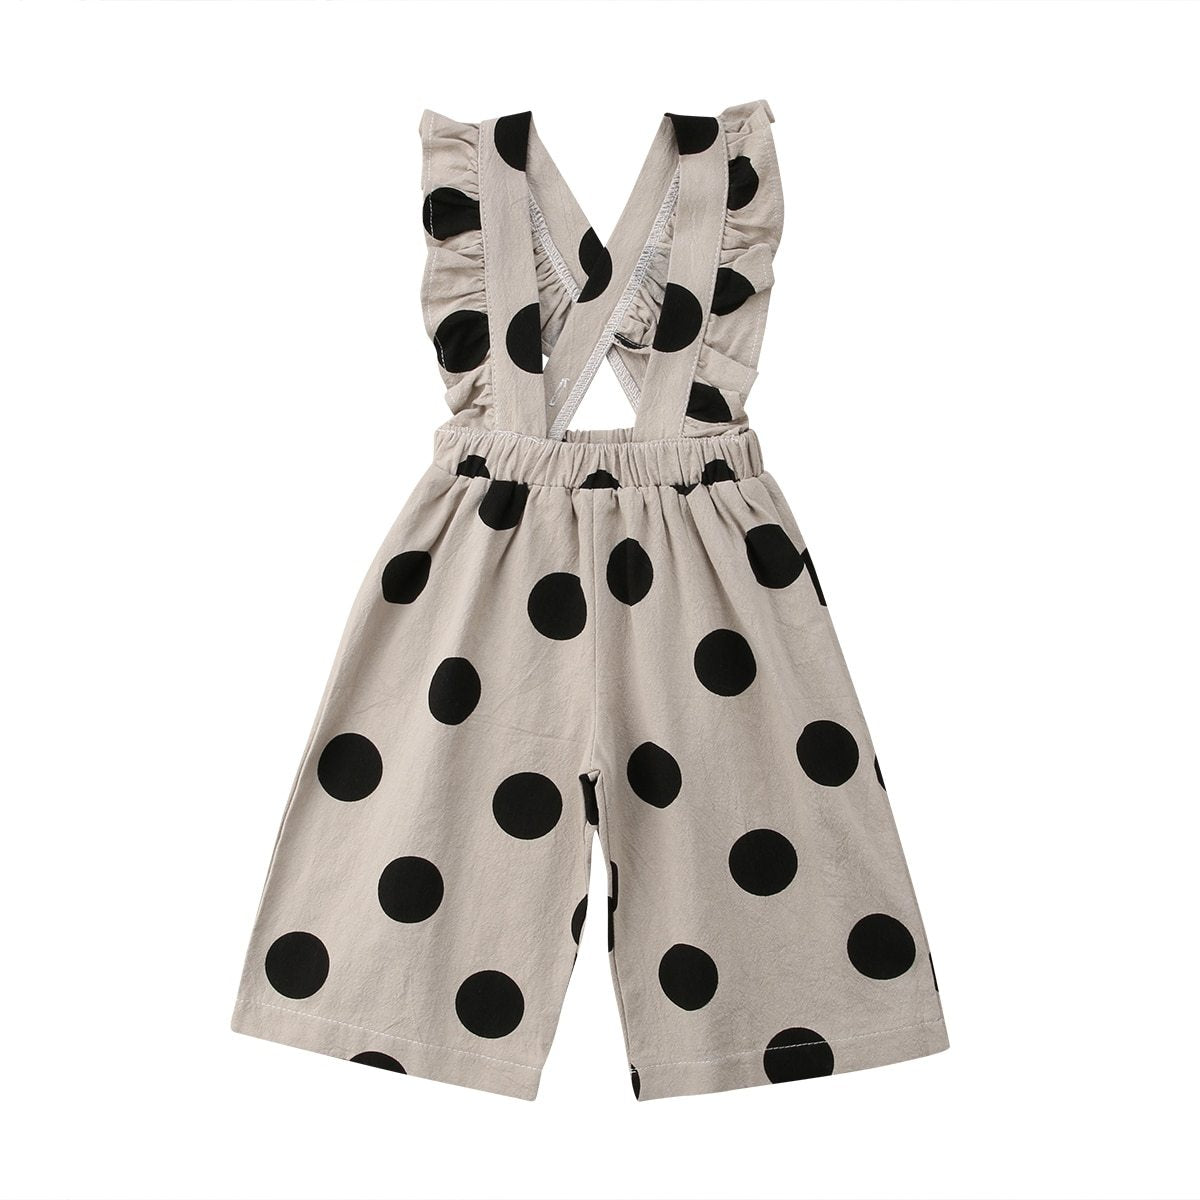 Ruffle Suspender Pants - Polka Dot